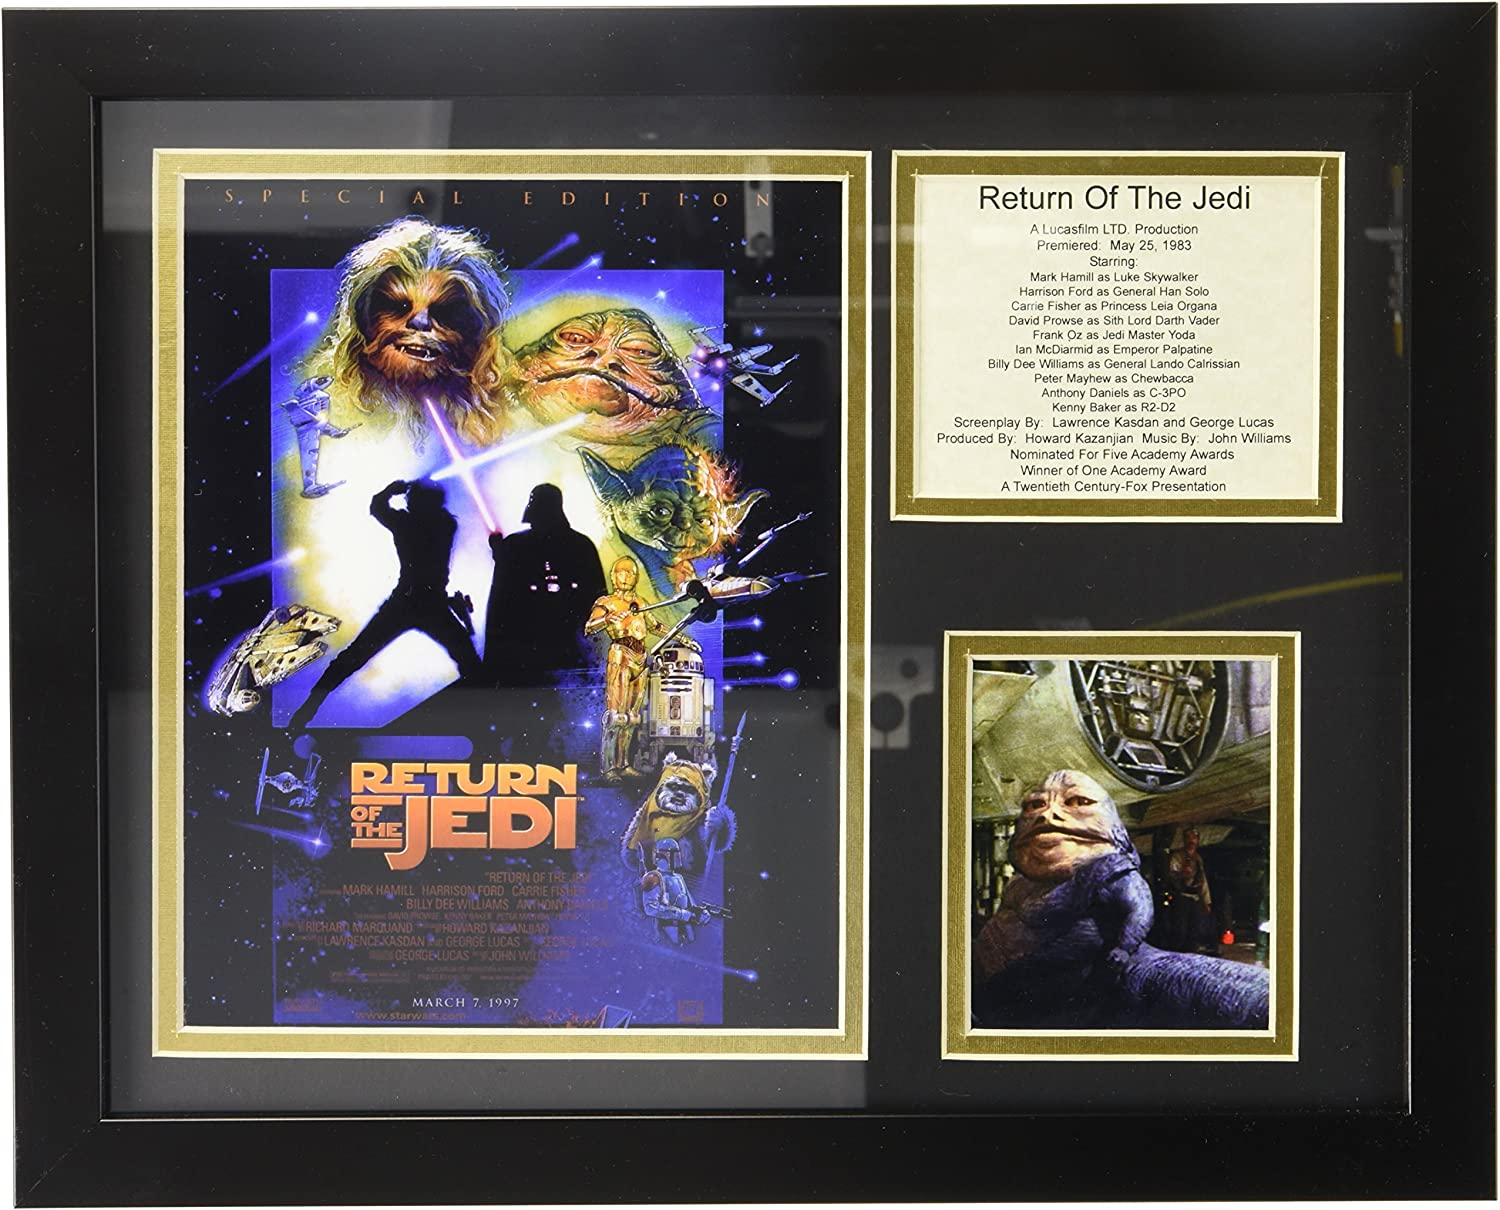 Legends Never Die Star Wars Return of The Jedi Special Edition Framed Photo Collage, 11 x 14-Inch